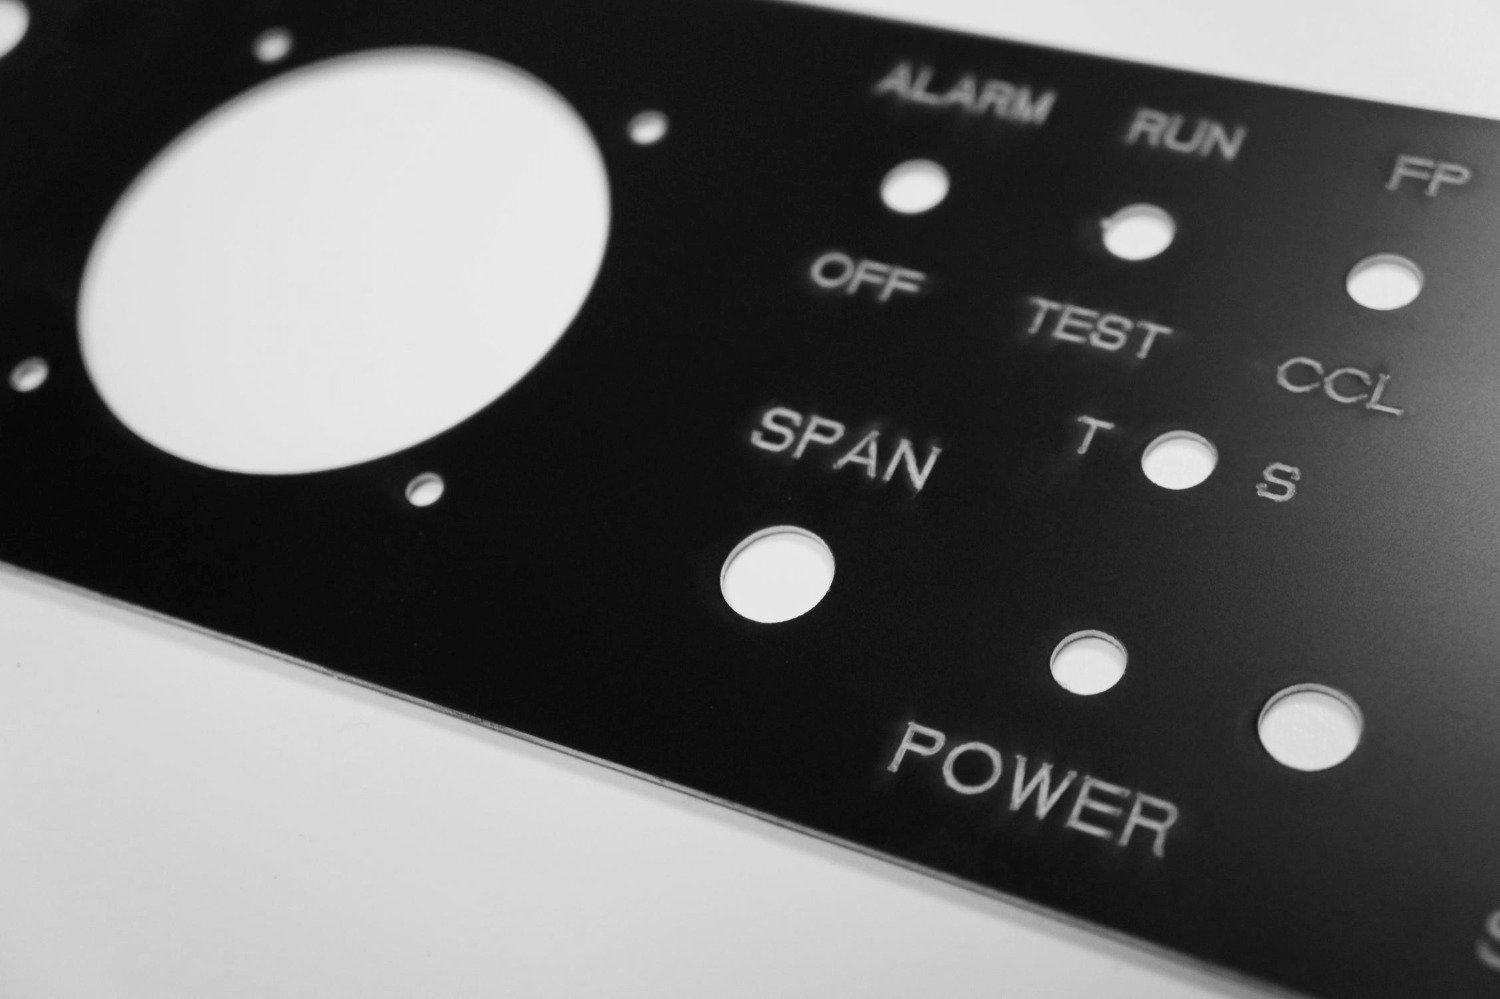 laser etched control panel